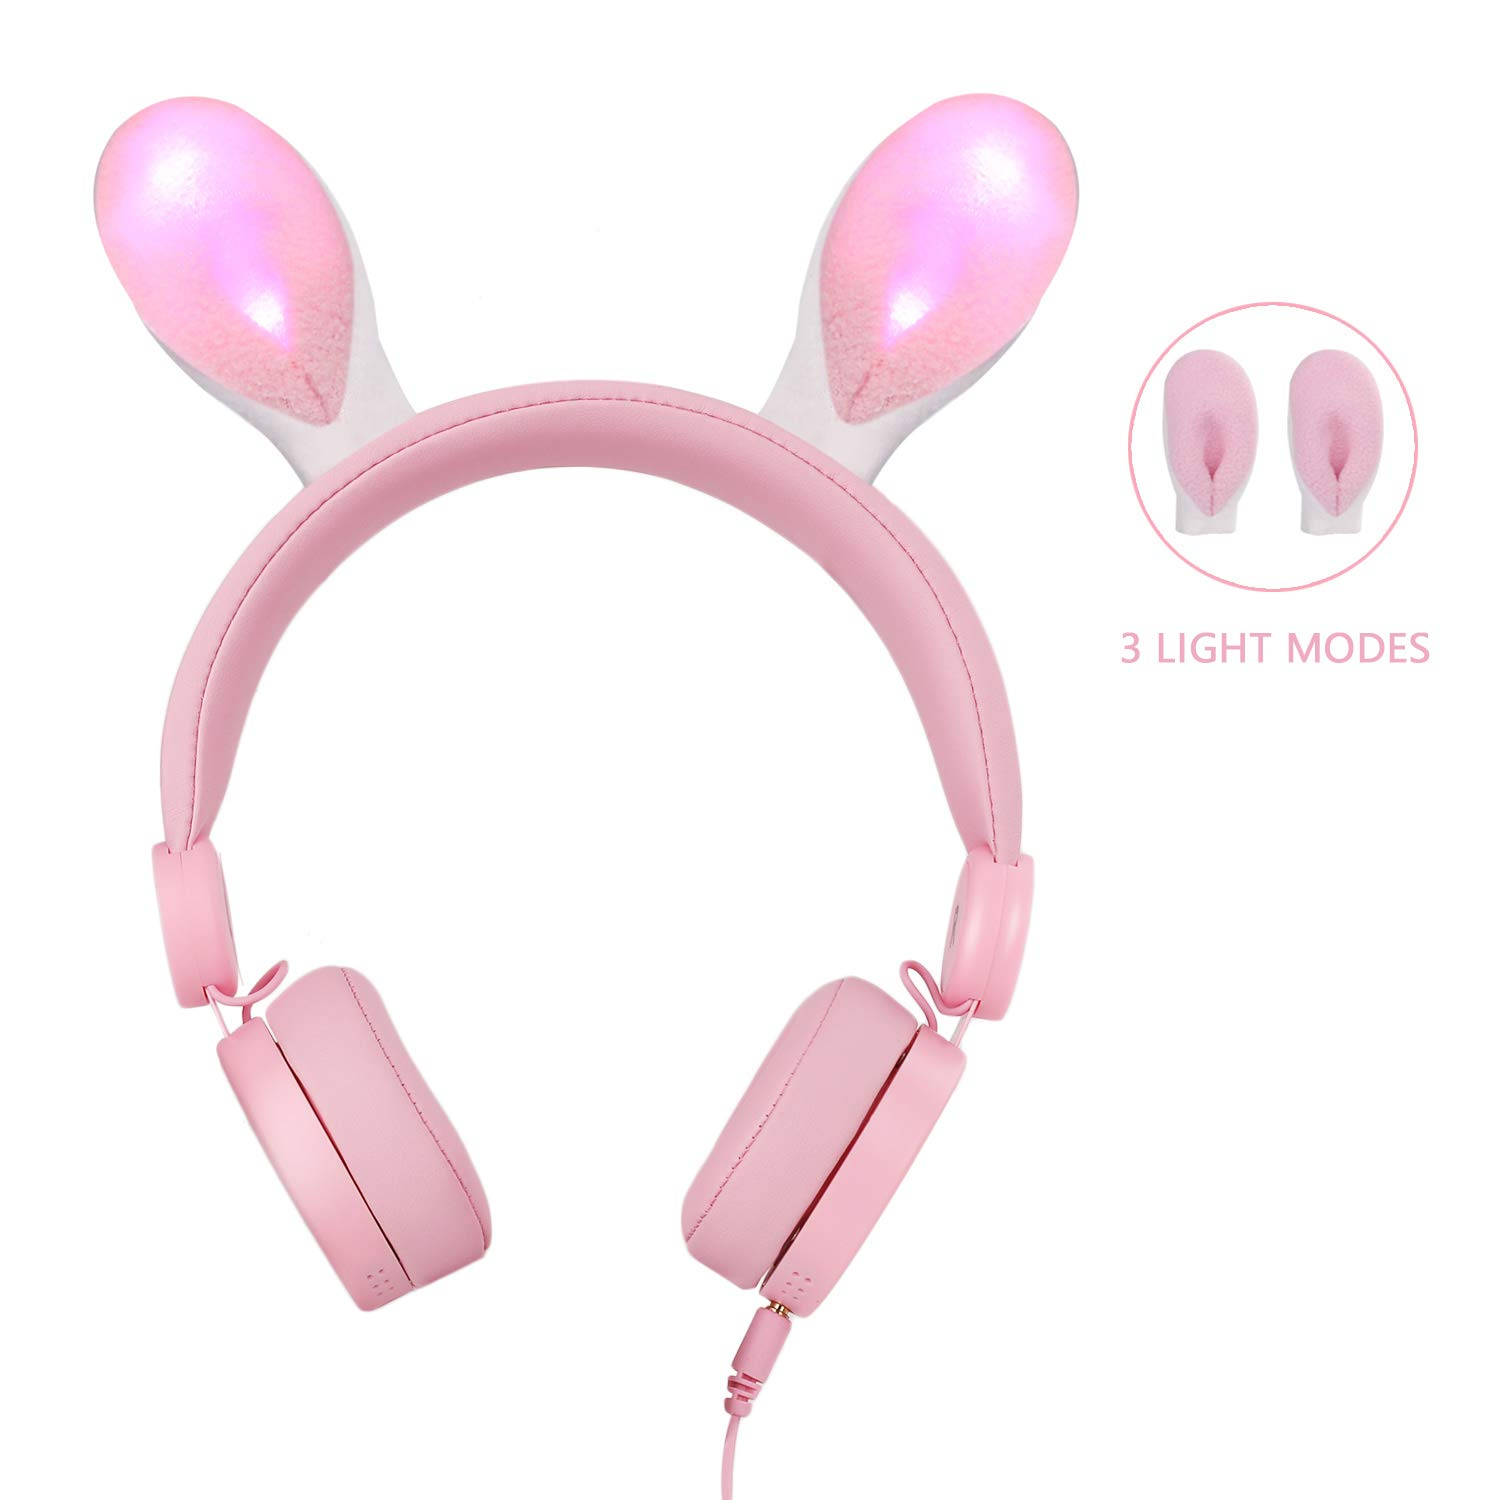 Kids Headphones, Jelly Comb Rabbit Wired On Ear Headphones with 85dB Volume Limited Hearing Protection & Music Sharing Function Headphones for Children-Pink (Pink)